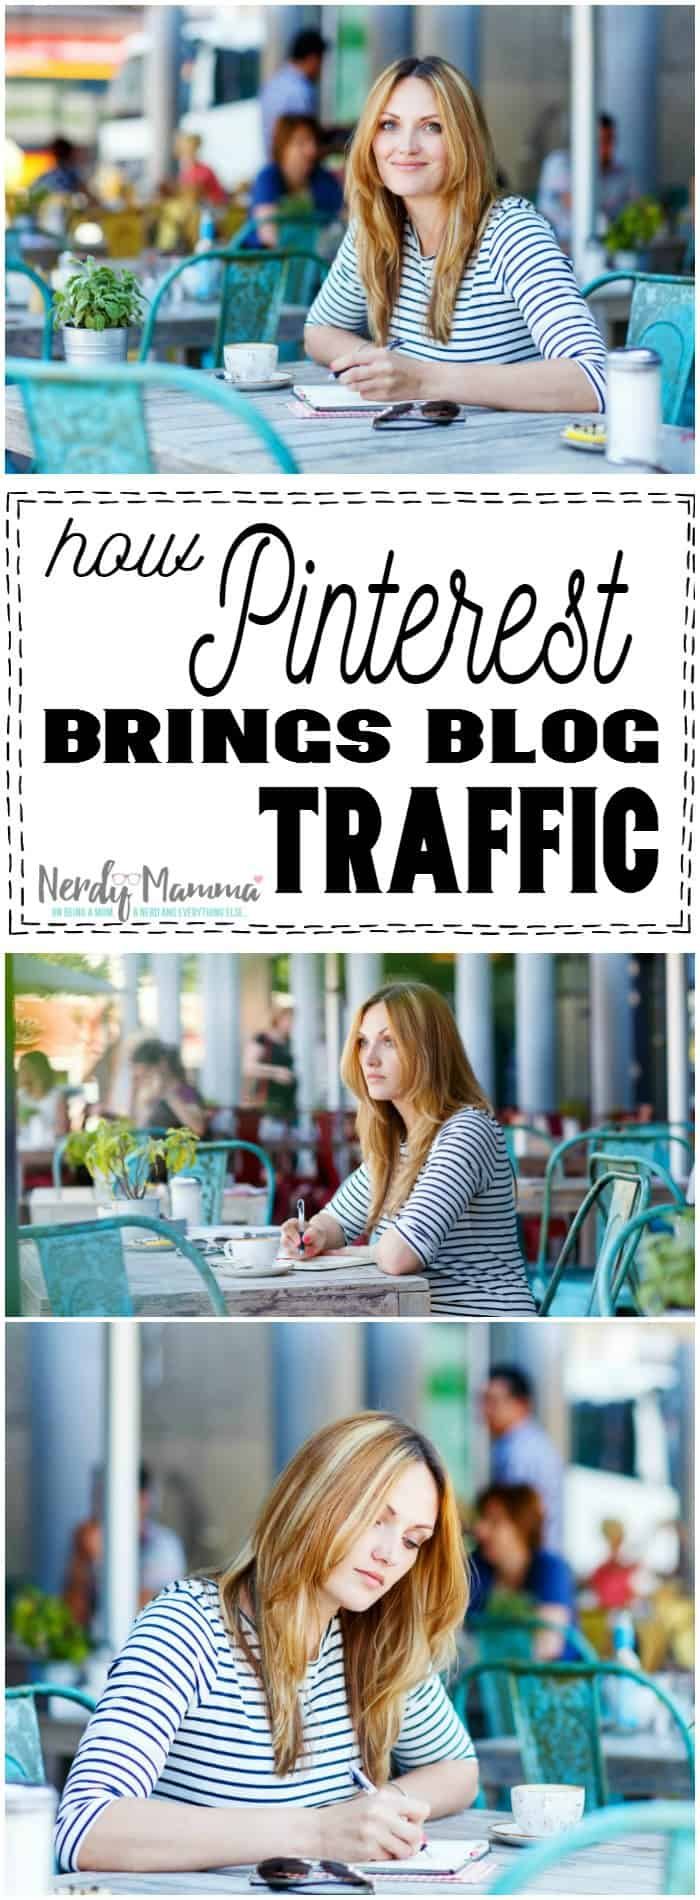 I really had no idea that was how Pinterest brought traffic to my blog. Good to know!